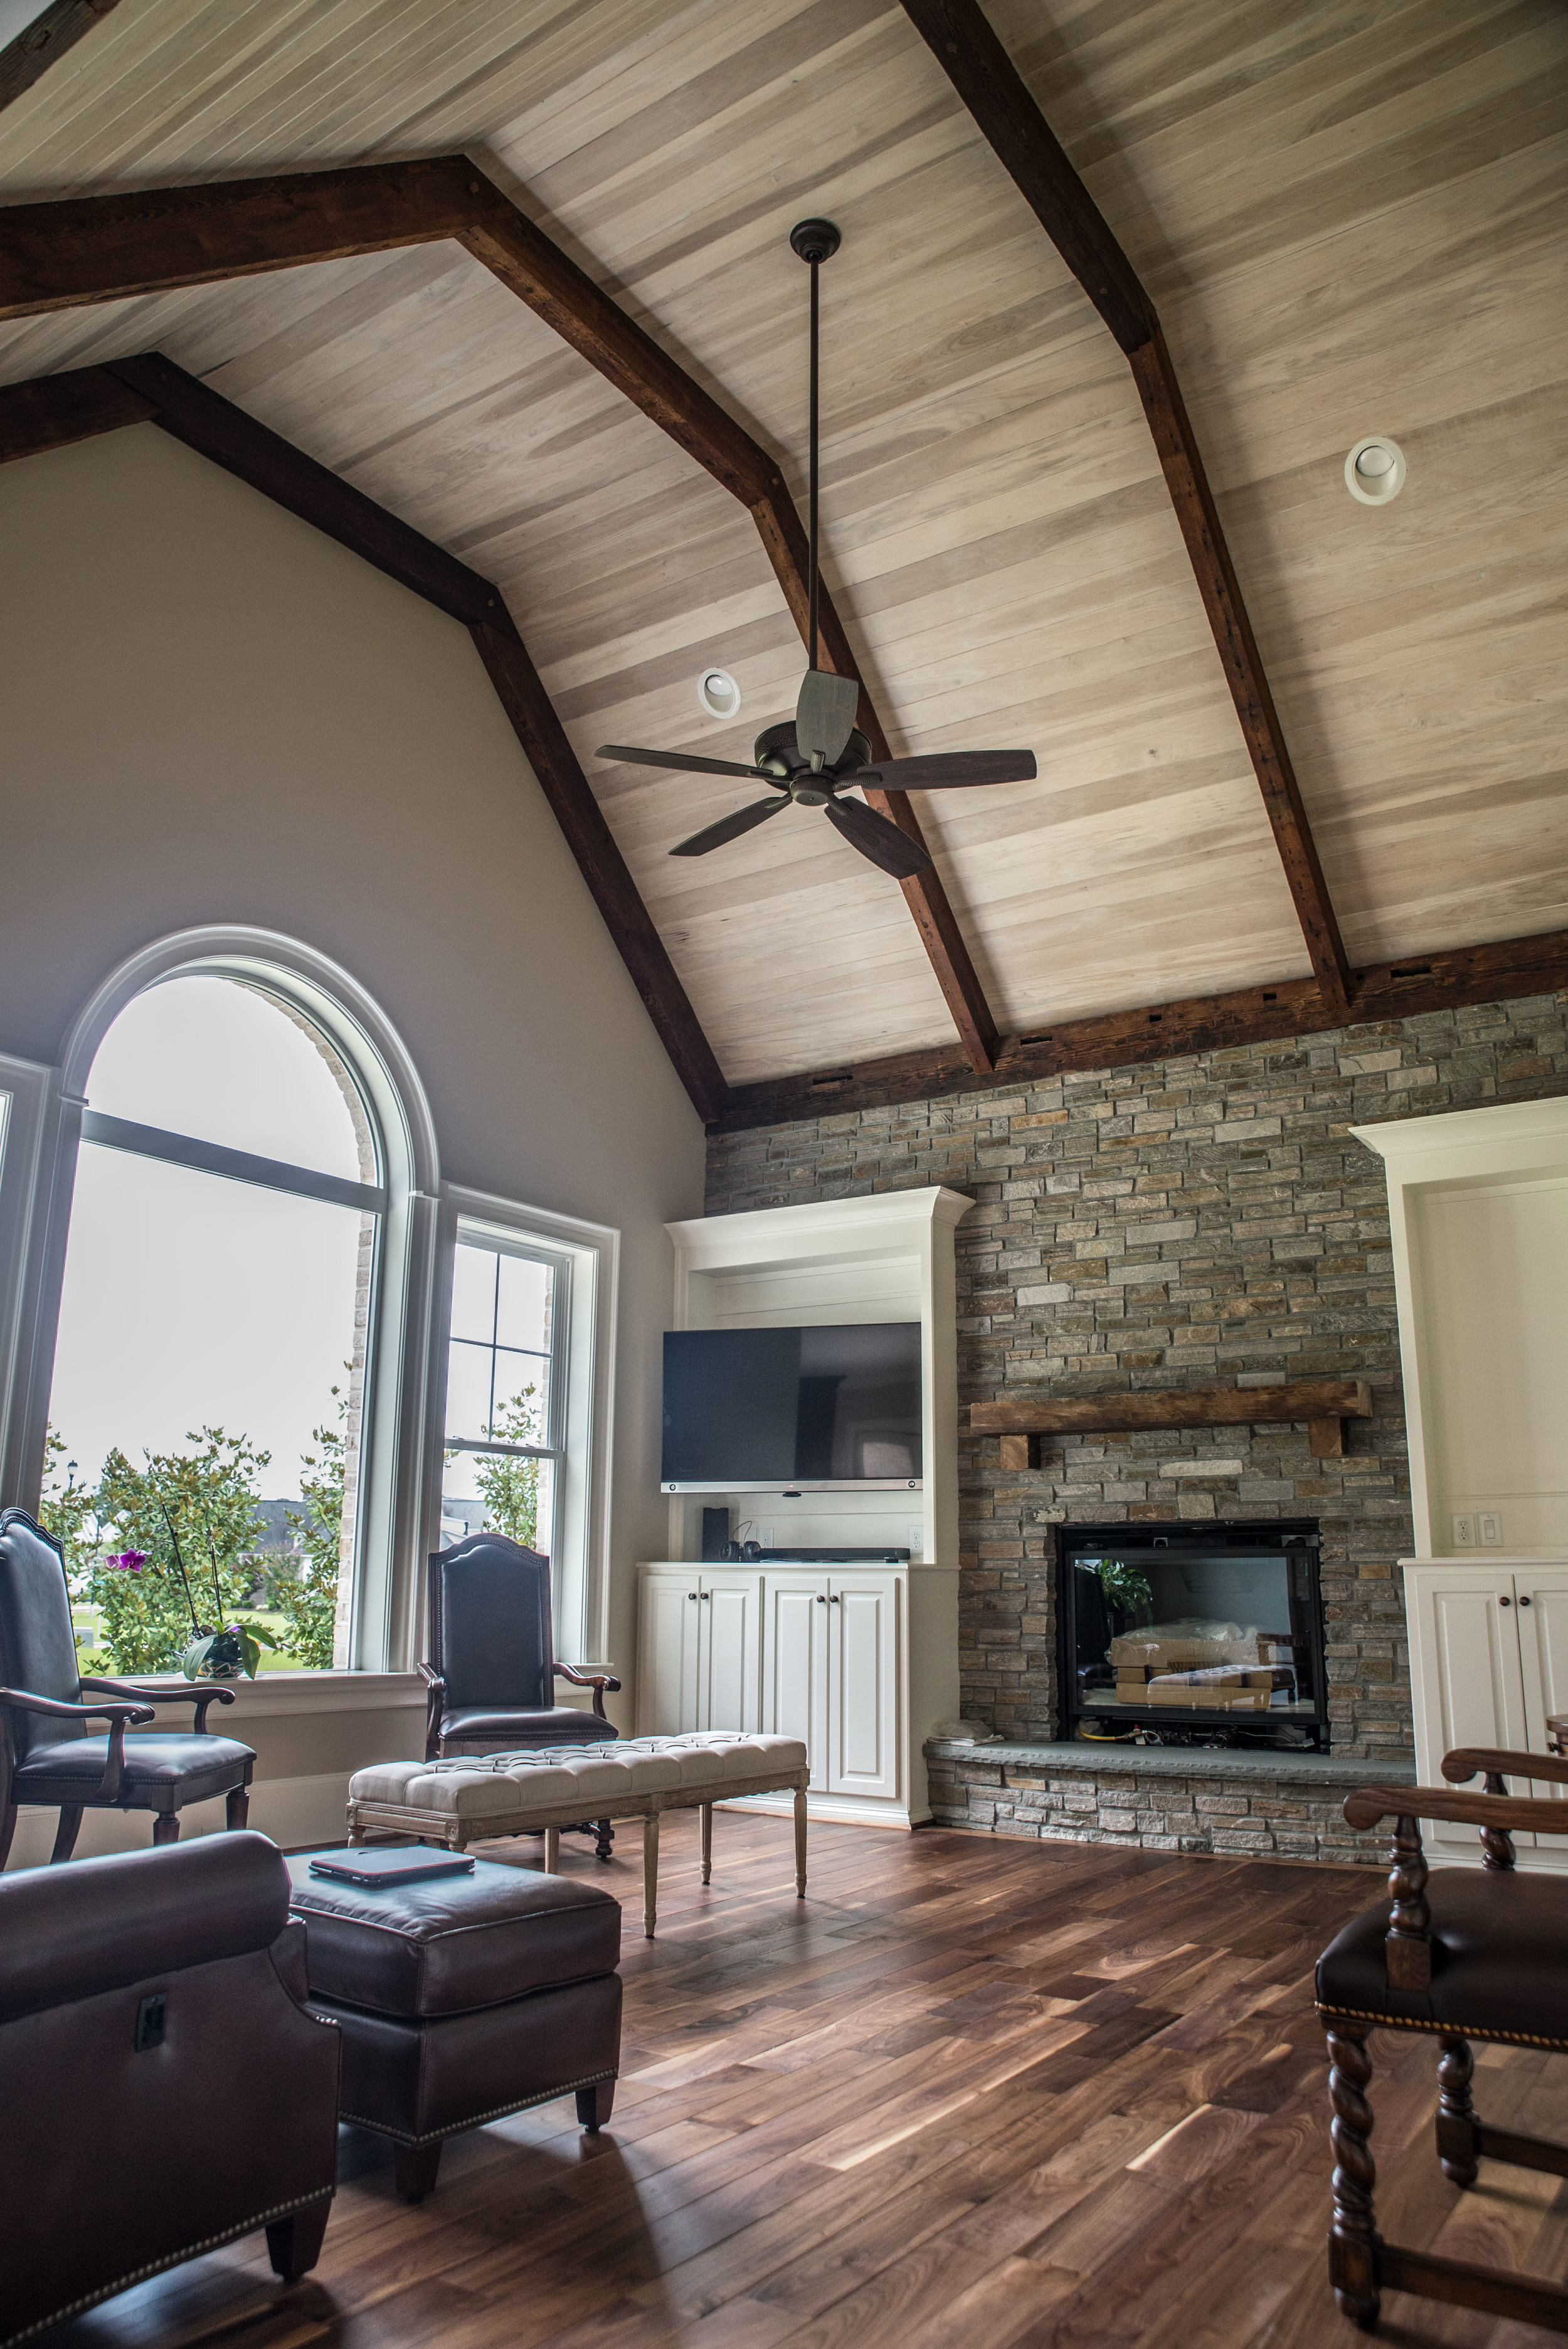 Custom Walnut Flooring with Antique Beams and Ceiling Panelling